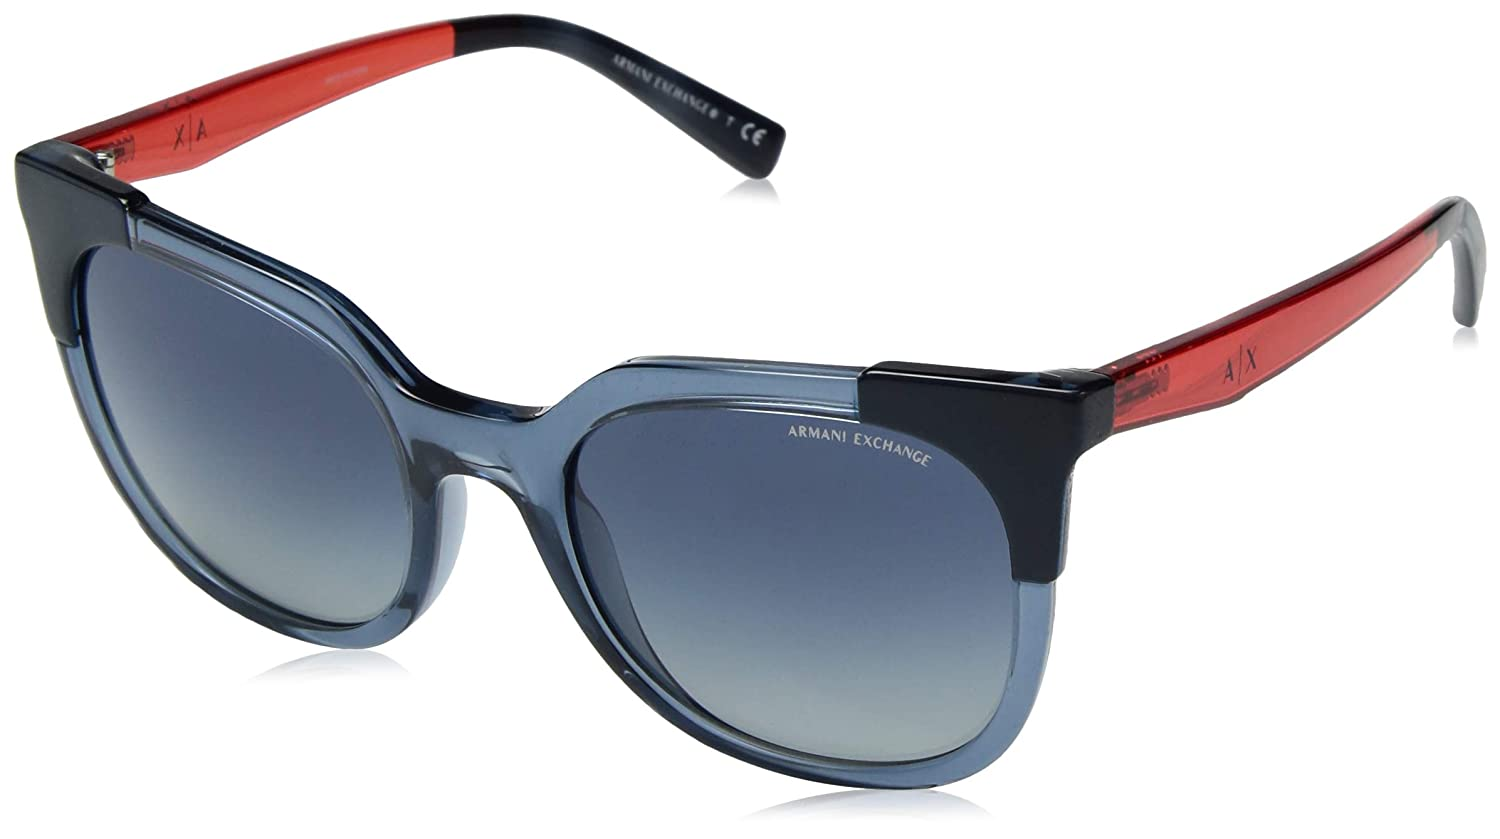 Armani Exchange Women's Injected Woman Sunglass Square, Transparent bluee Dress, 53.0 mm